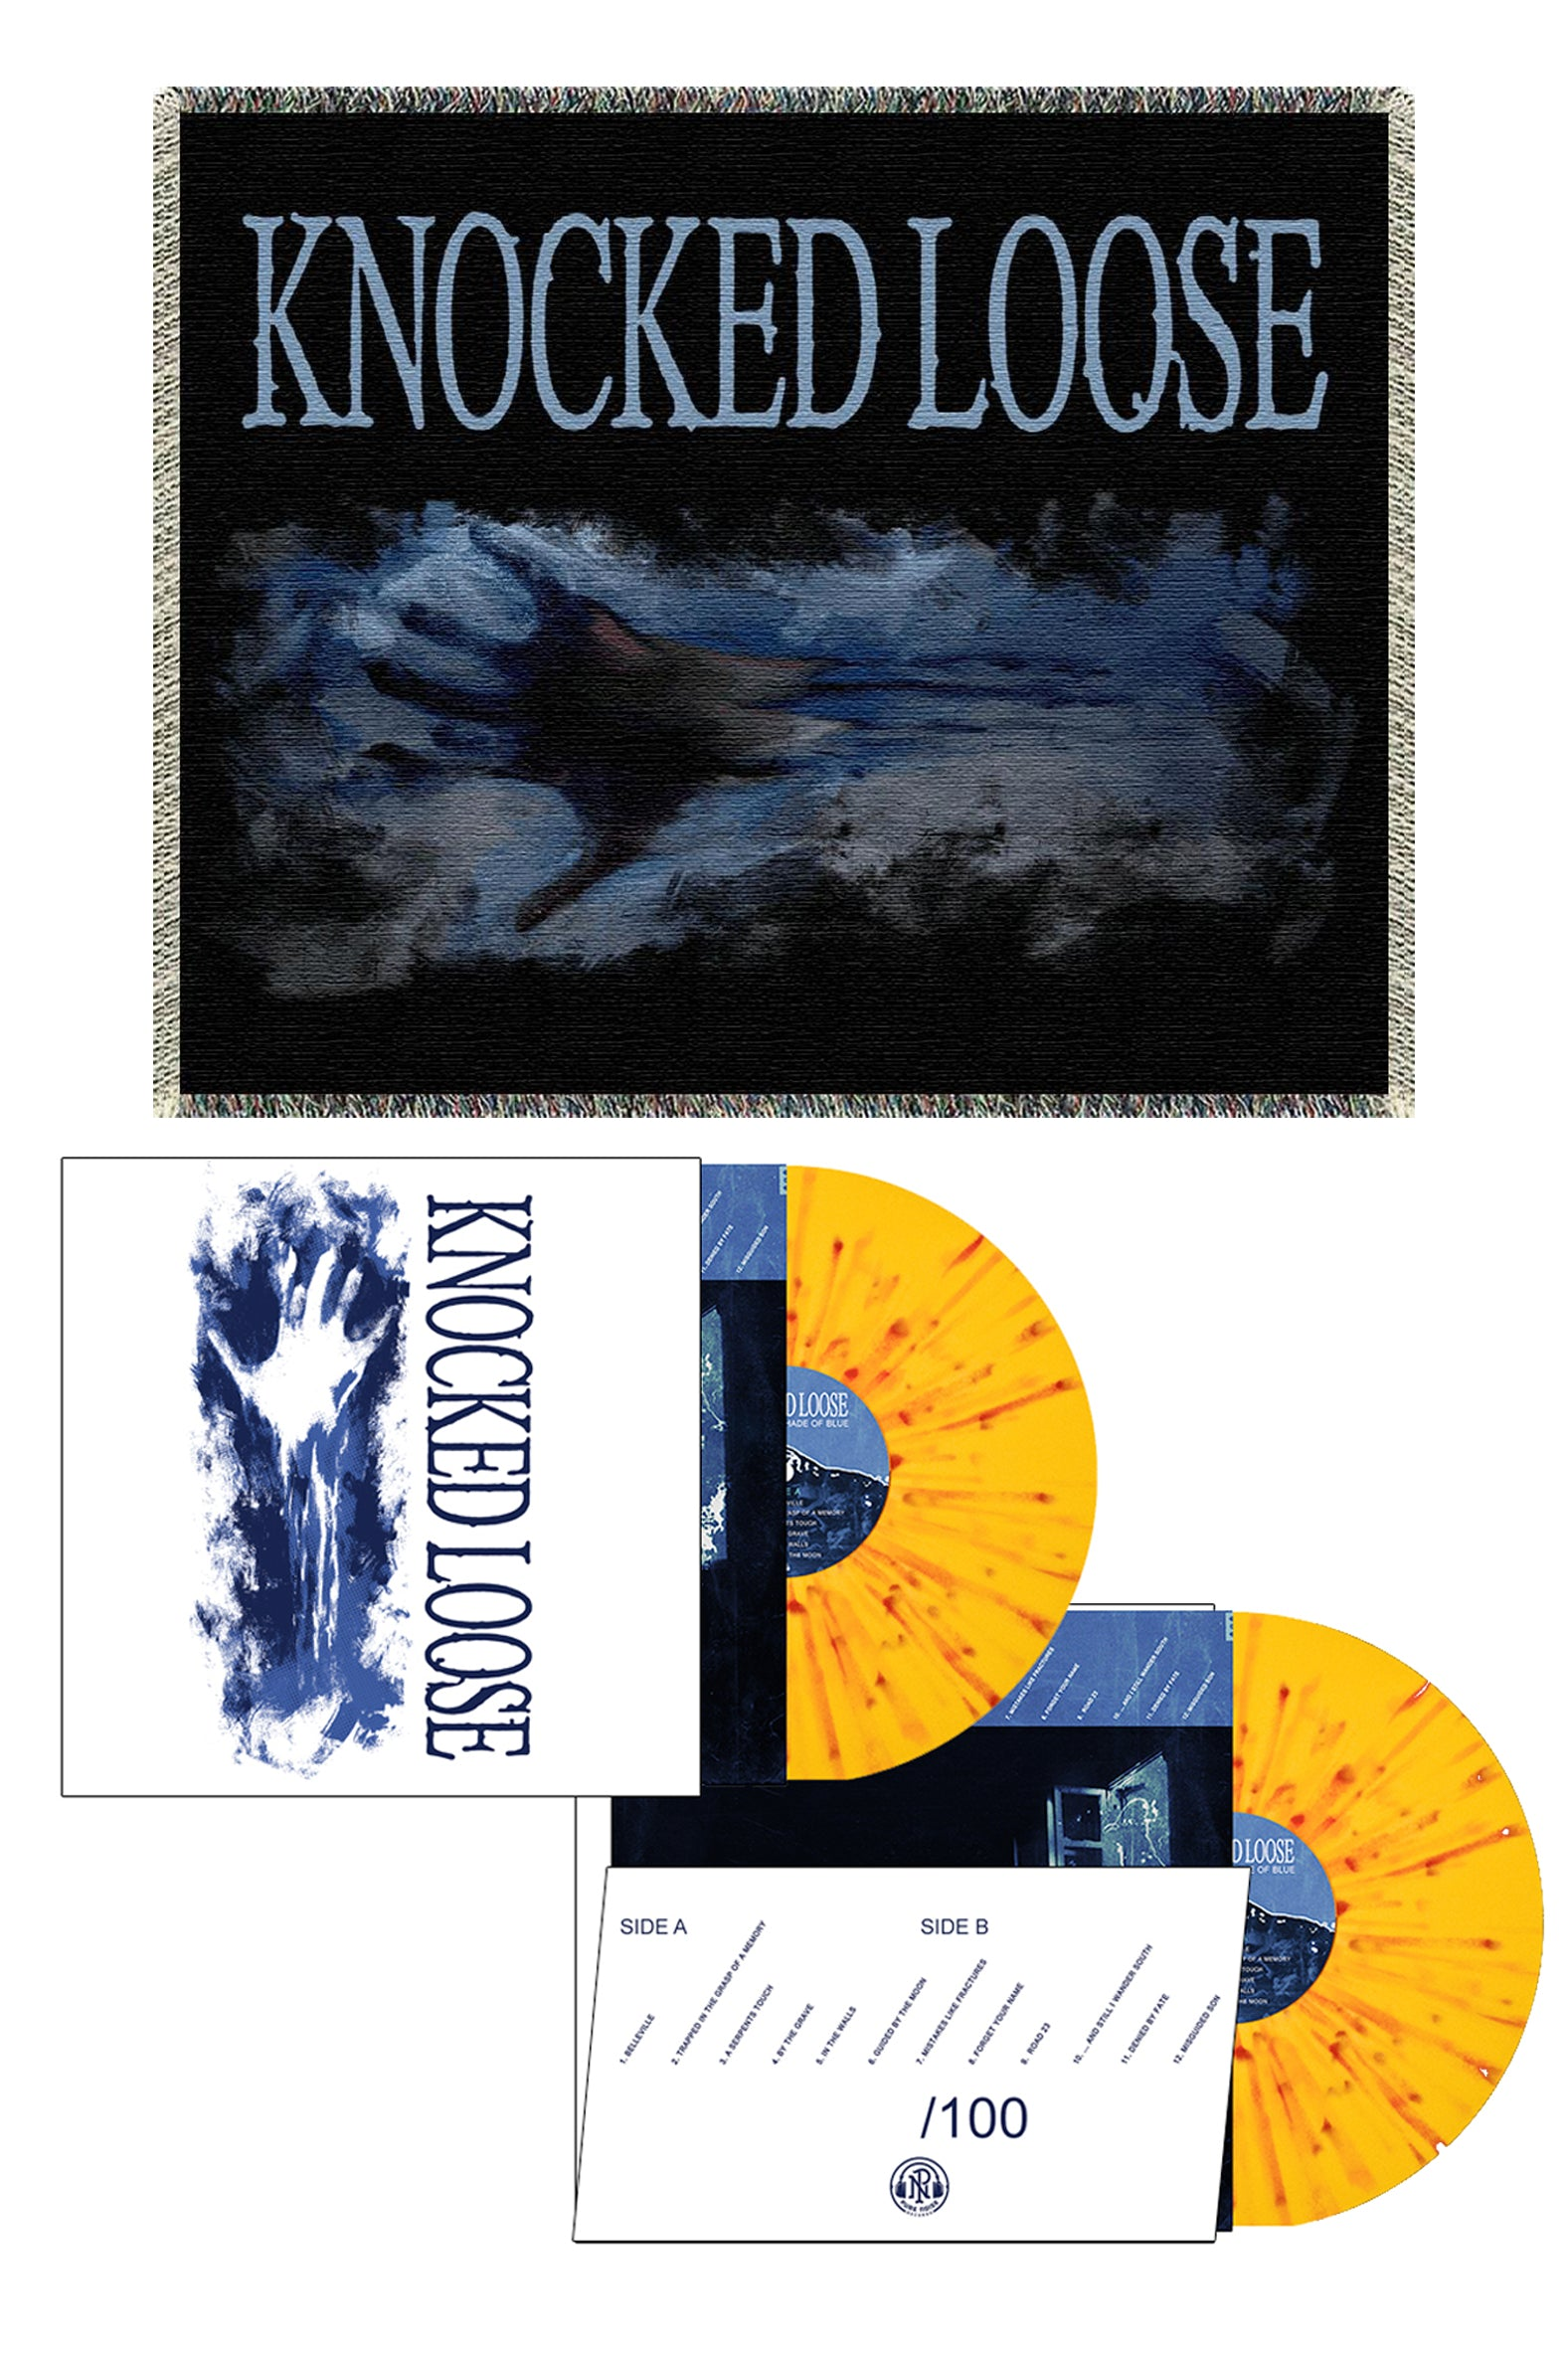 Knocked Loose - A Different Shade of Blue Preorder Bundle #2 - Merch Limited